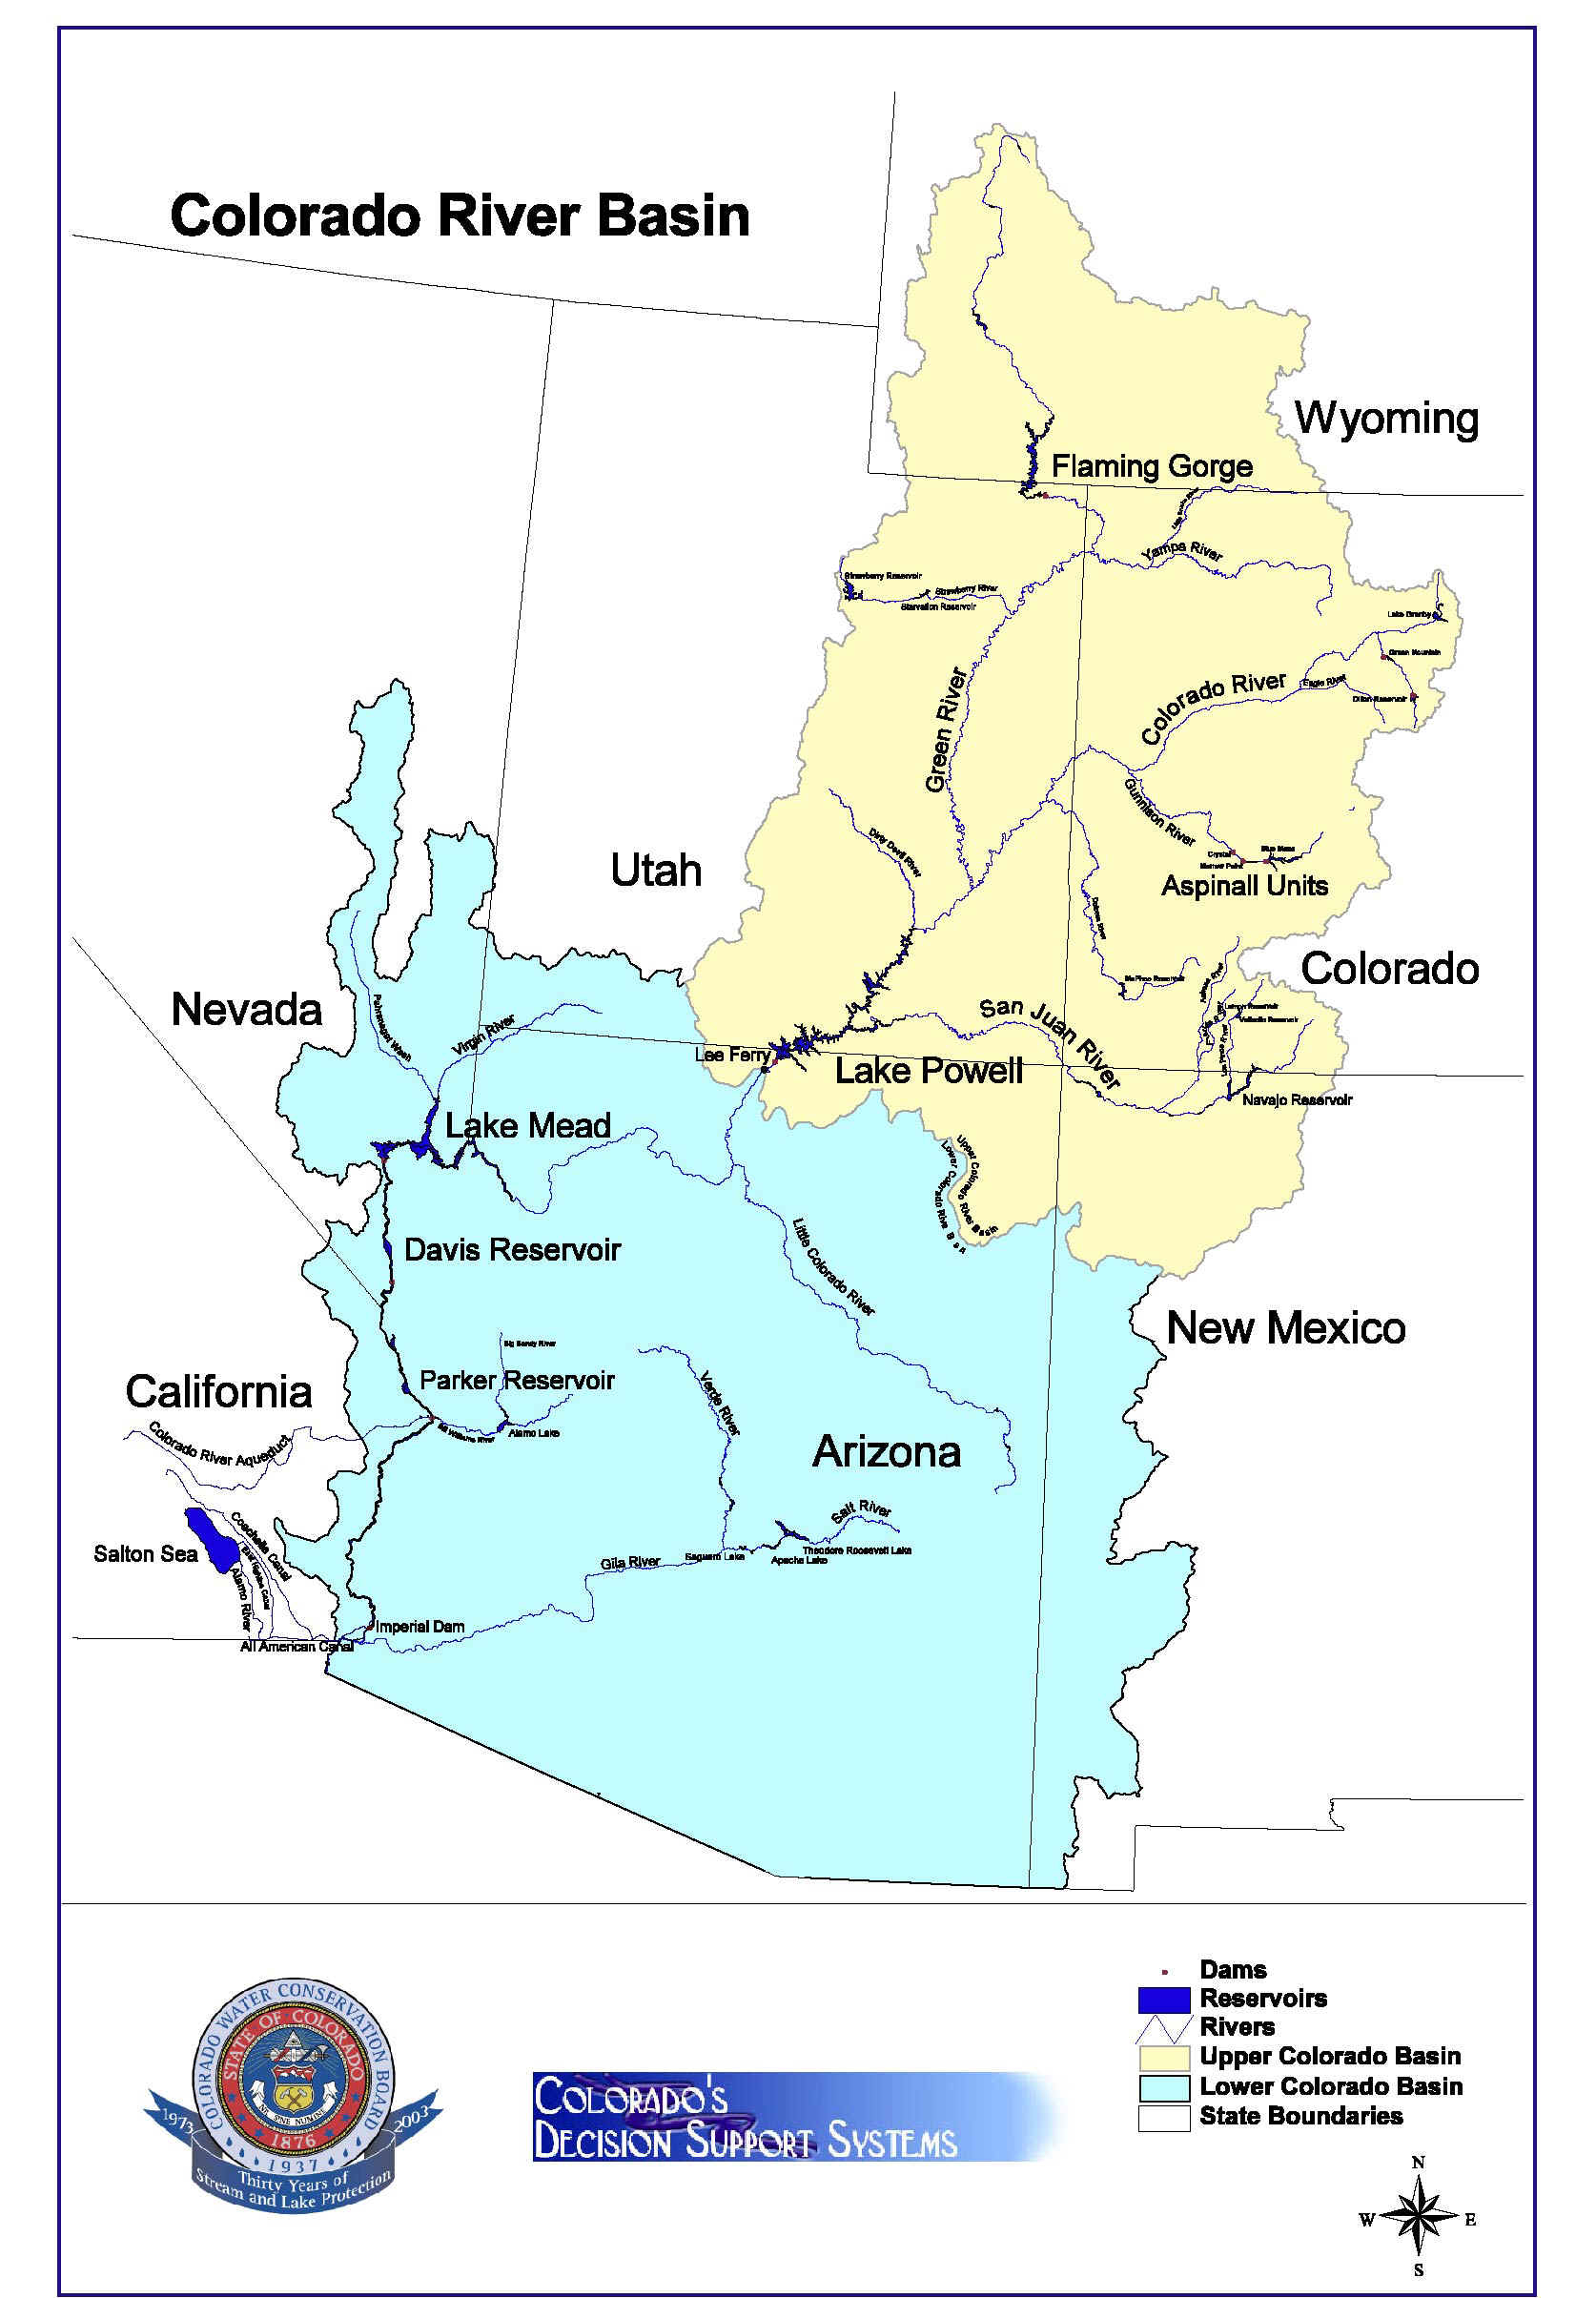 Colorado River On Us Map Pictures To Pin On Pinterest PinsDaddy - Map of colorado river in texas